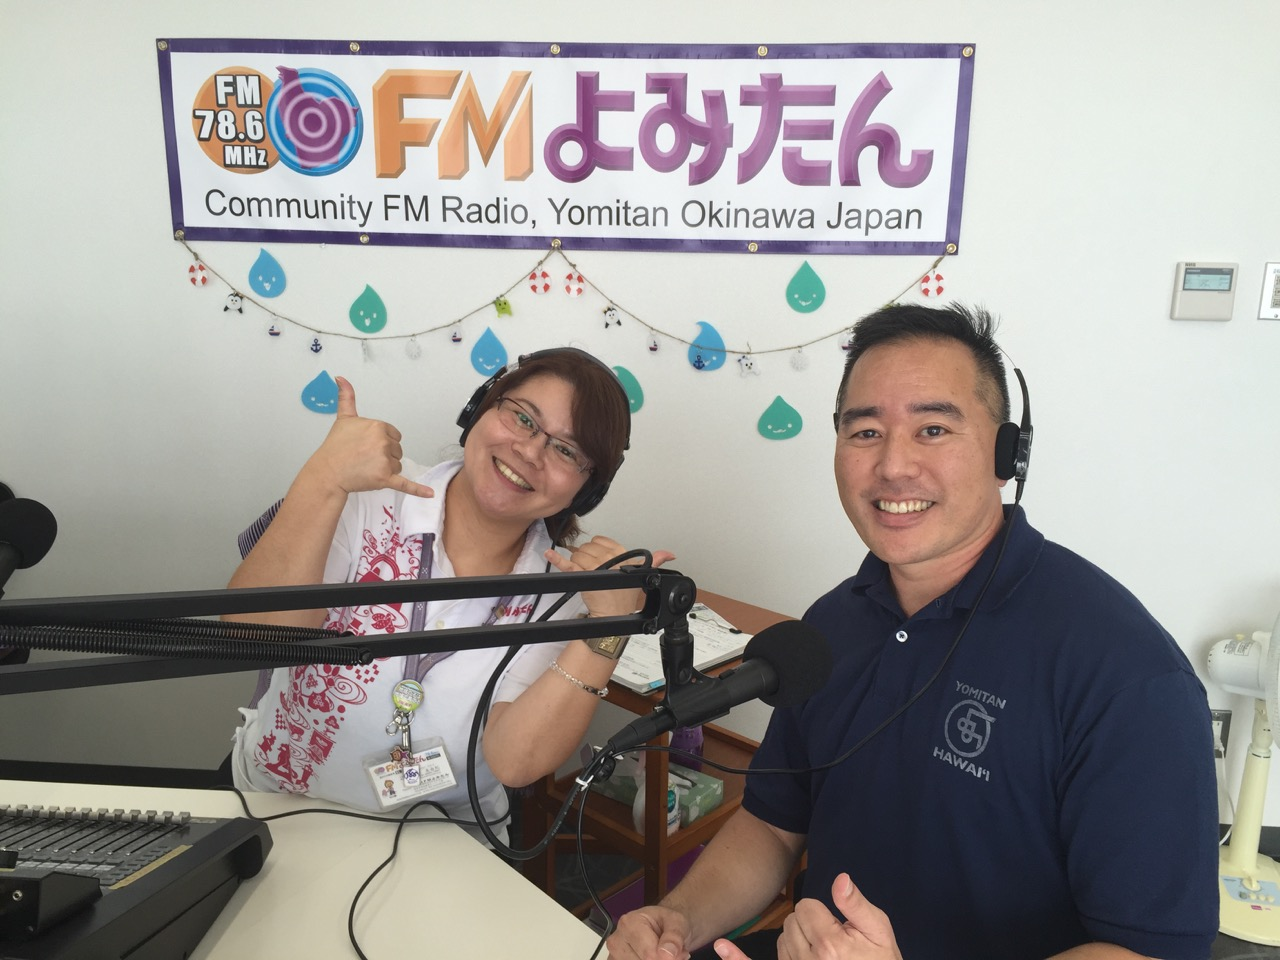 FM Yomitan announcer Miyuki Higa and guest Colin Sewake flash shakas during their broadcast.